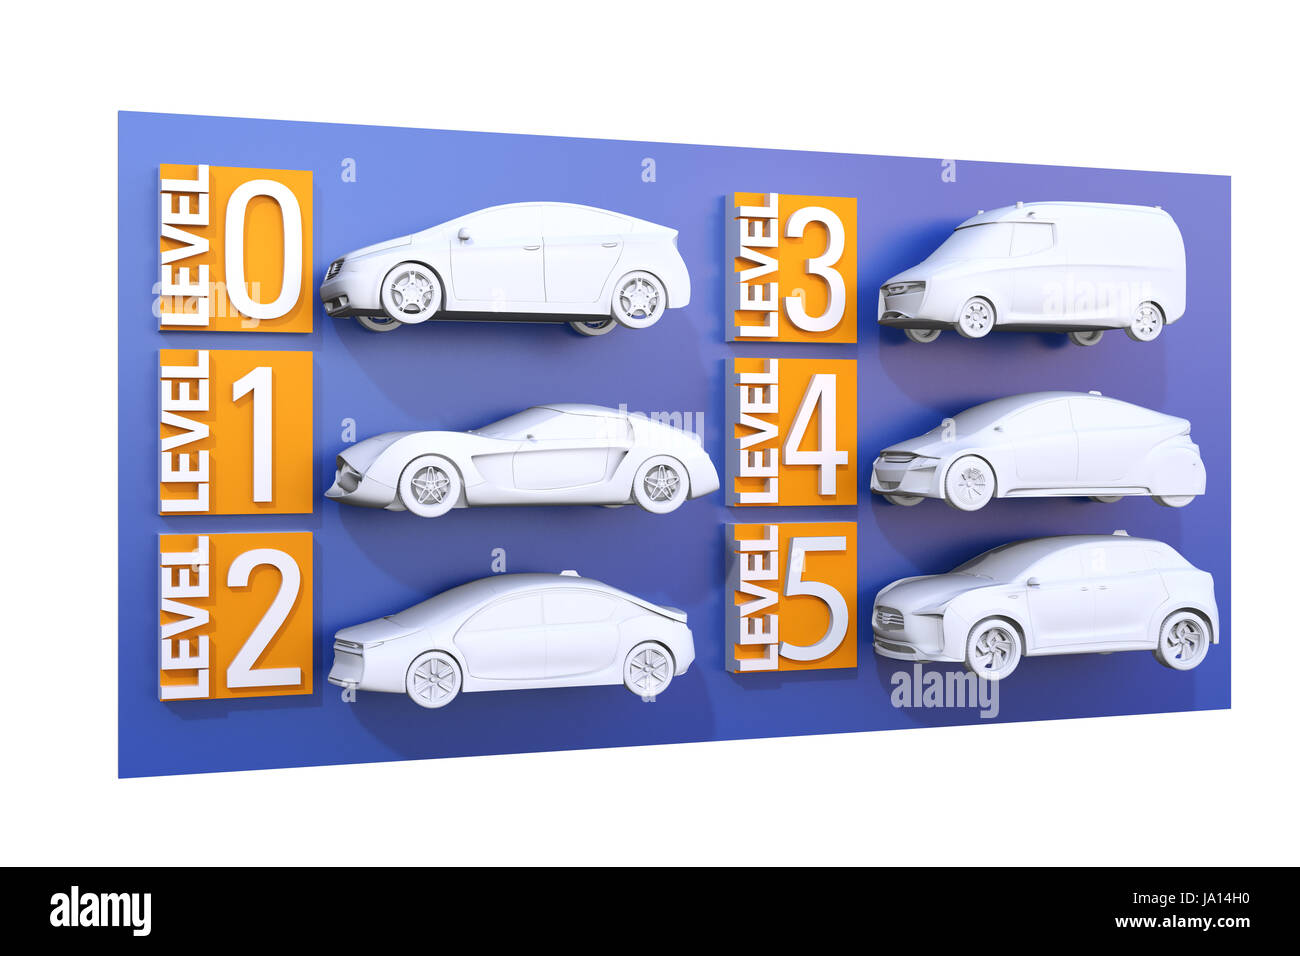 Autonomous car classification concept. 3D rendering image. Stock Photo